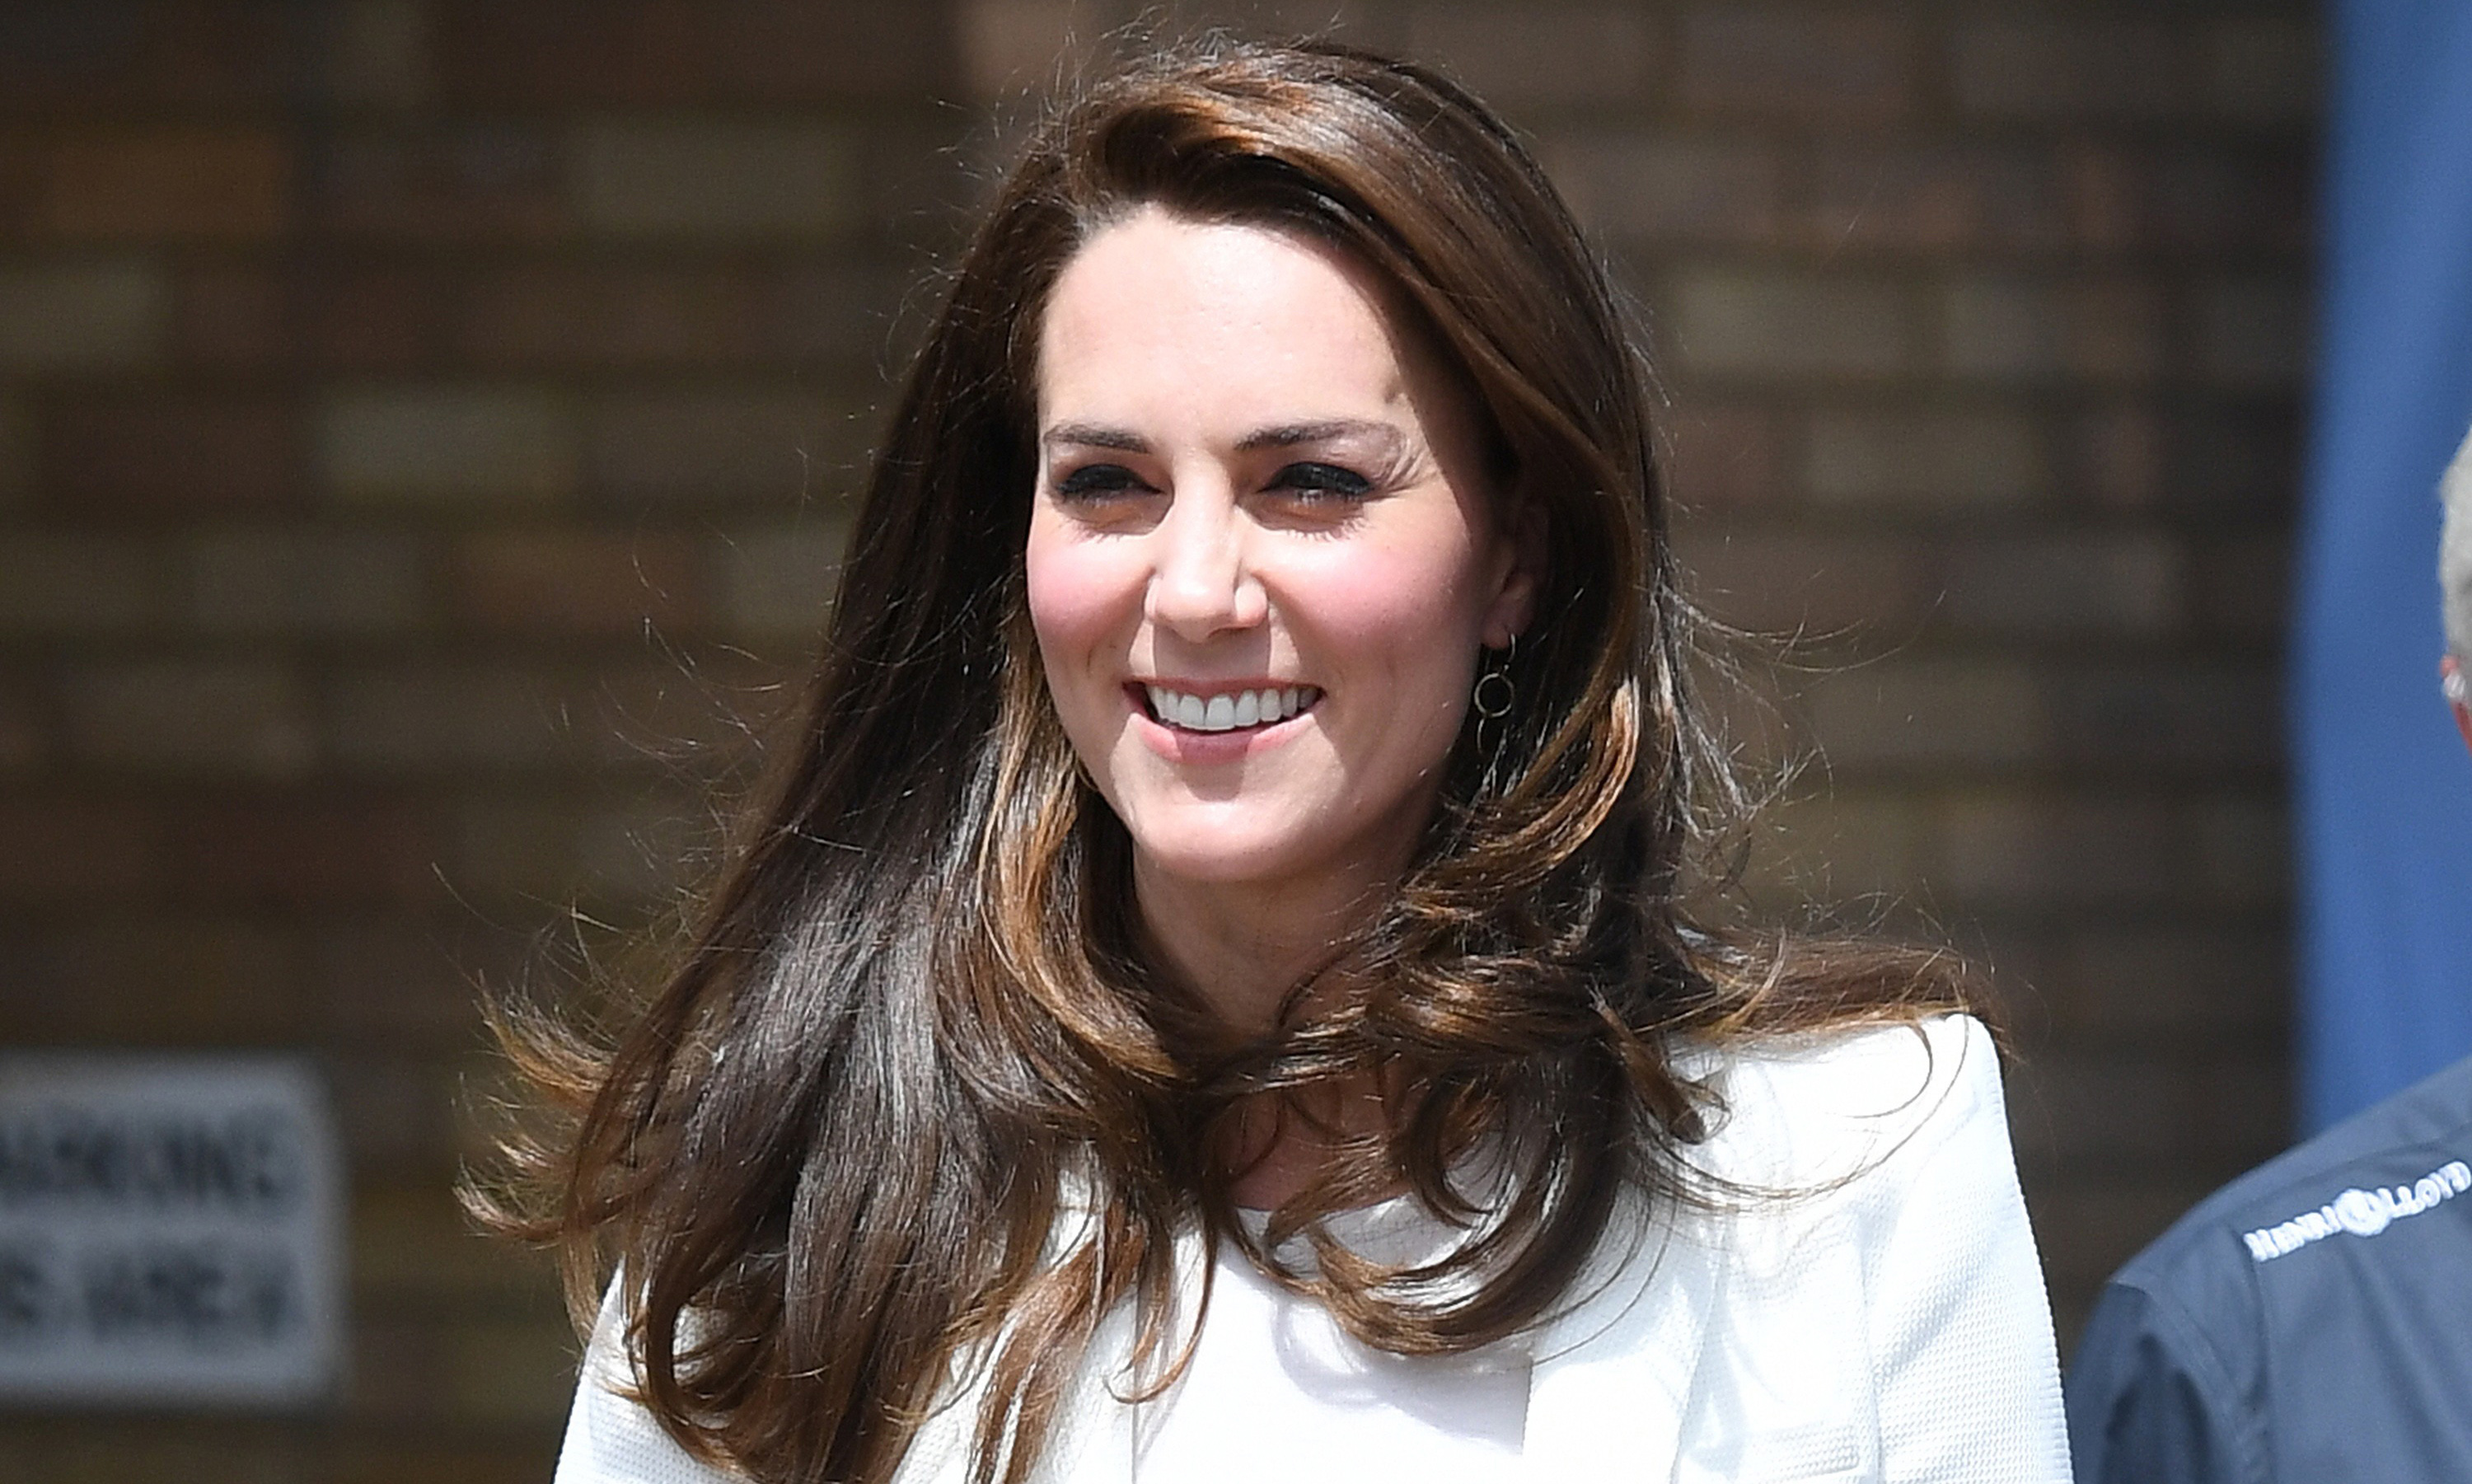 Kate Middleton Admits She's Less Sporty After Prince George, Princess Charlotte's Arrival